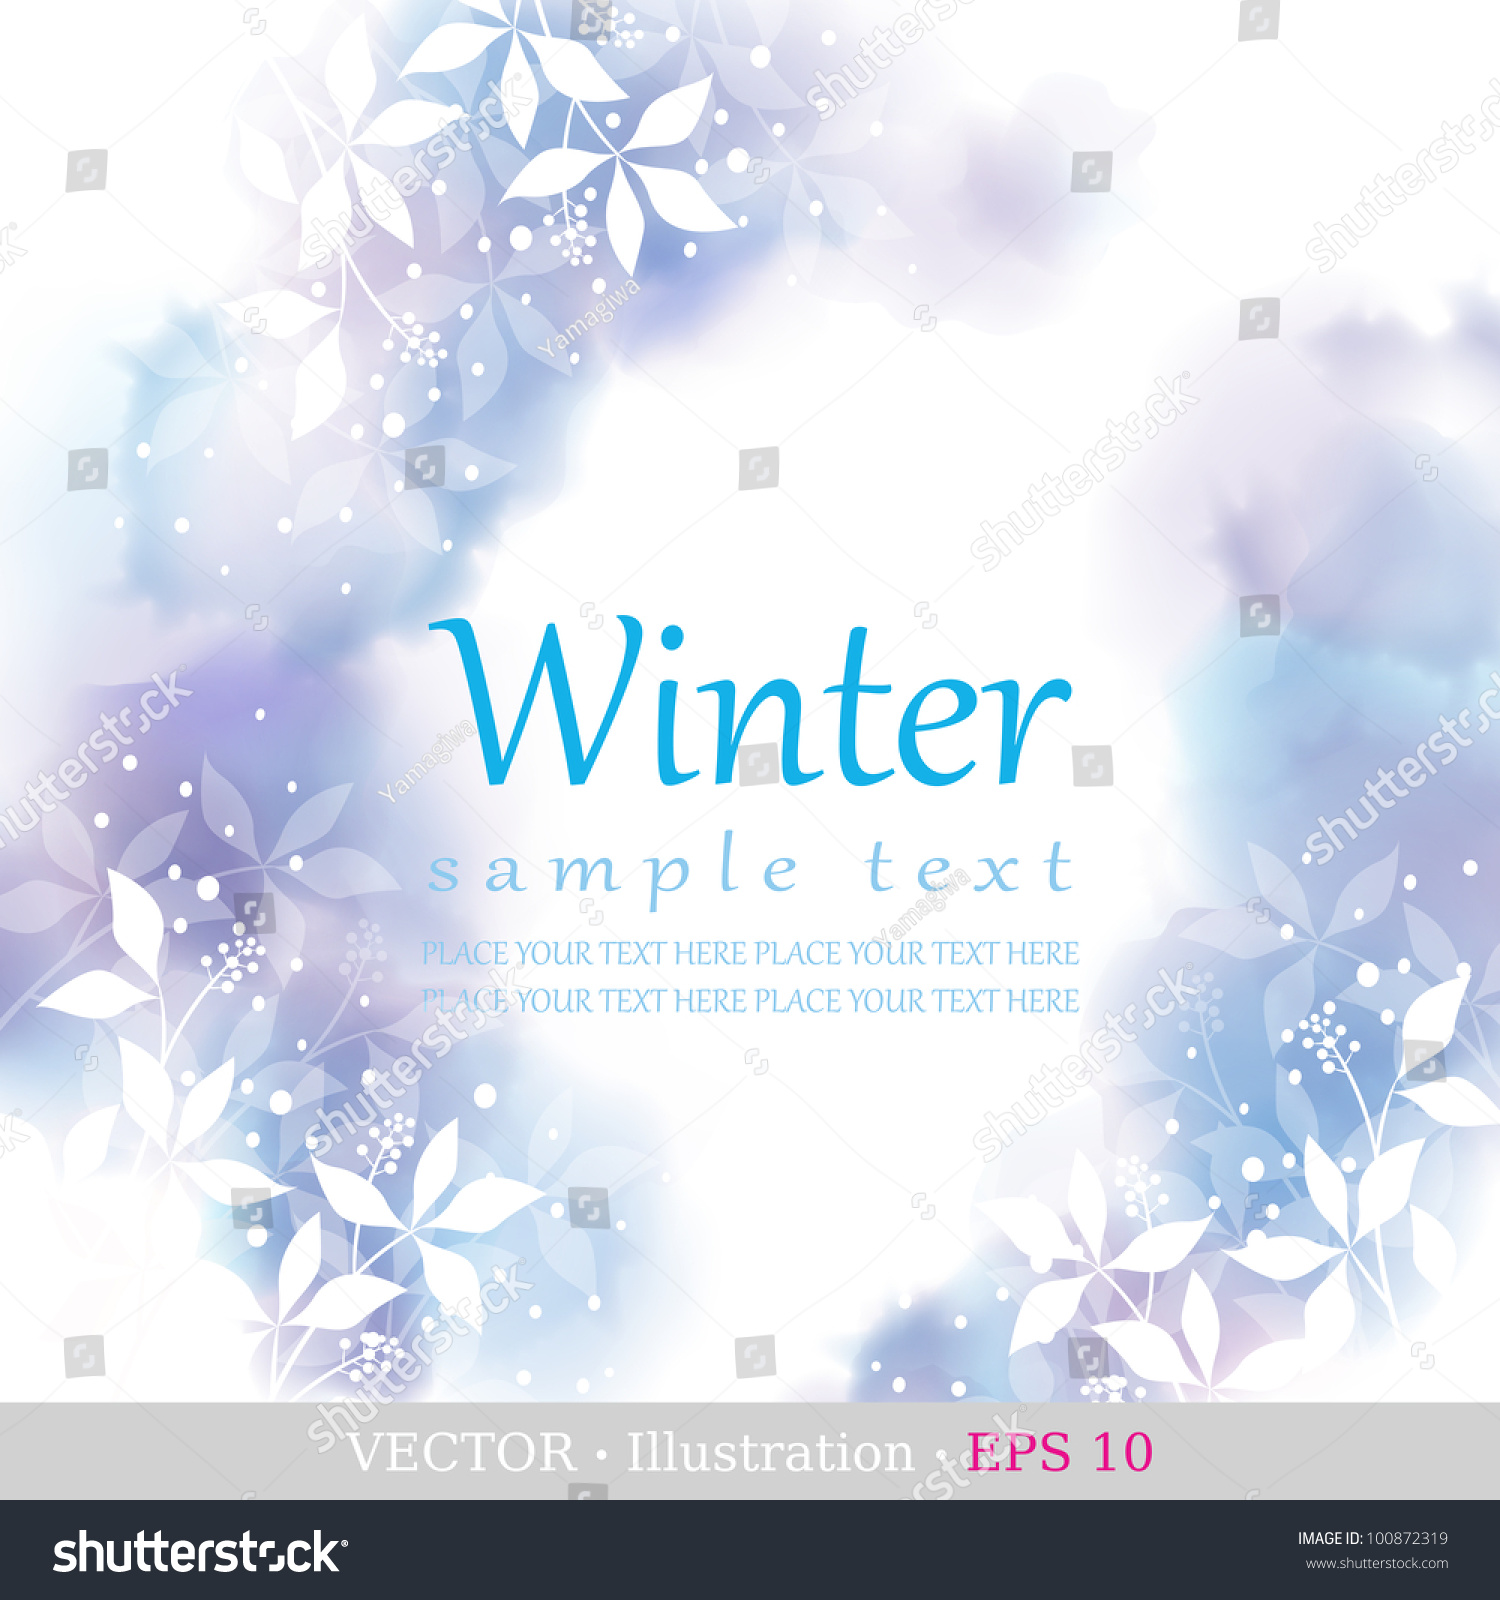 winter four seasons calendar days year stock vector  four seasons calendar days of the year cover of the title page colorful